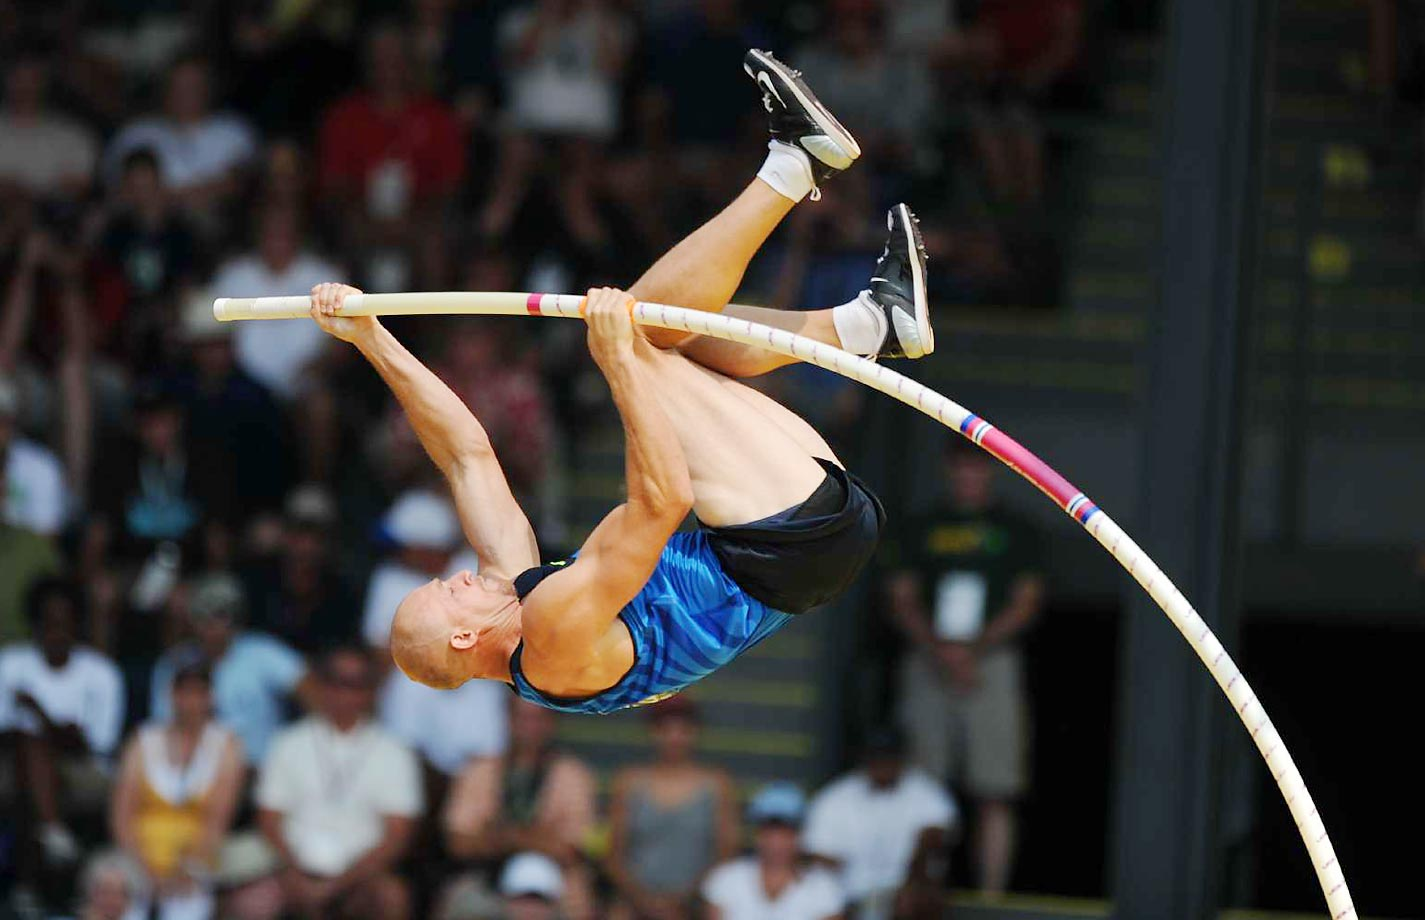 Tom Pappas during the pole vault at the 2008 U.S. Team Trials.